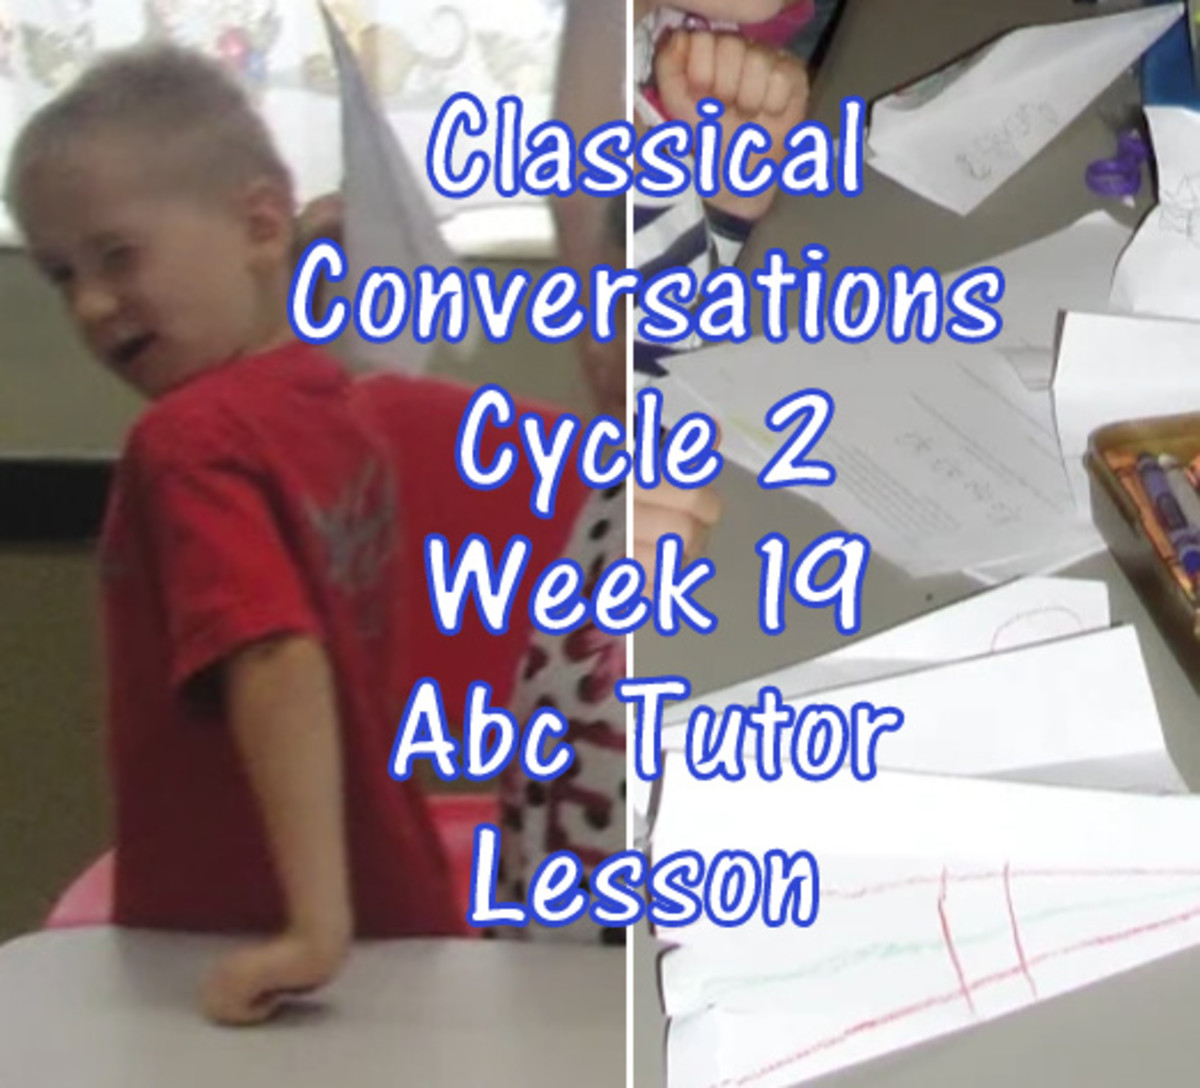 CC Cycle 2 Week 19 Lesson for Abecedarian Tutors